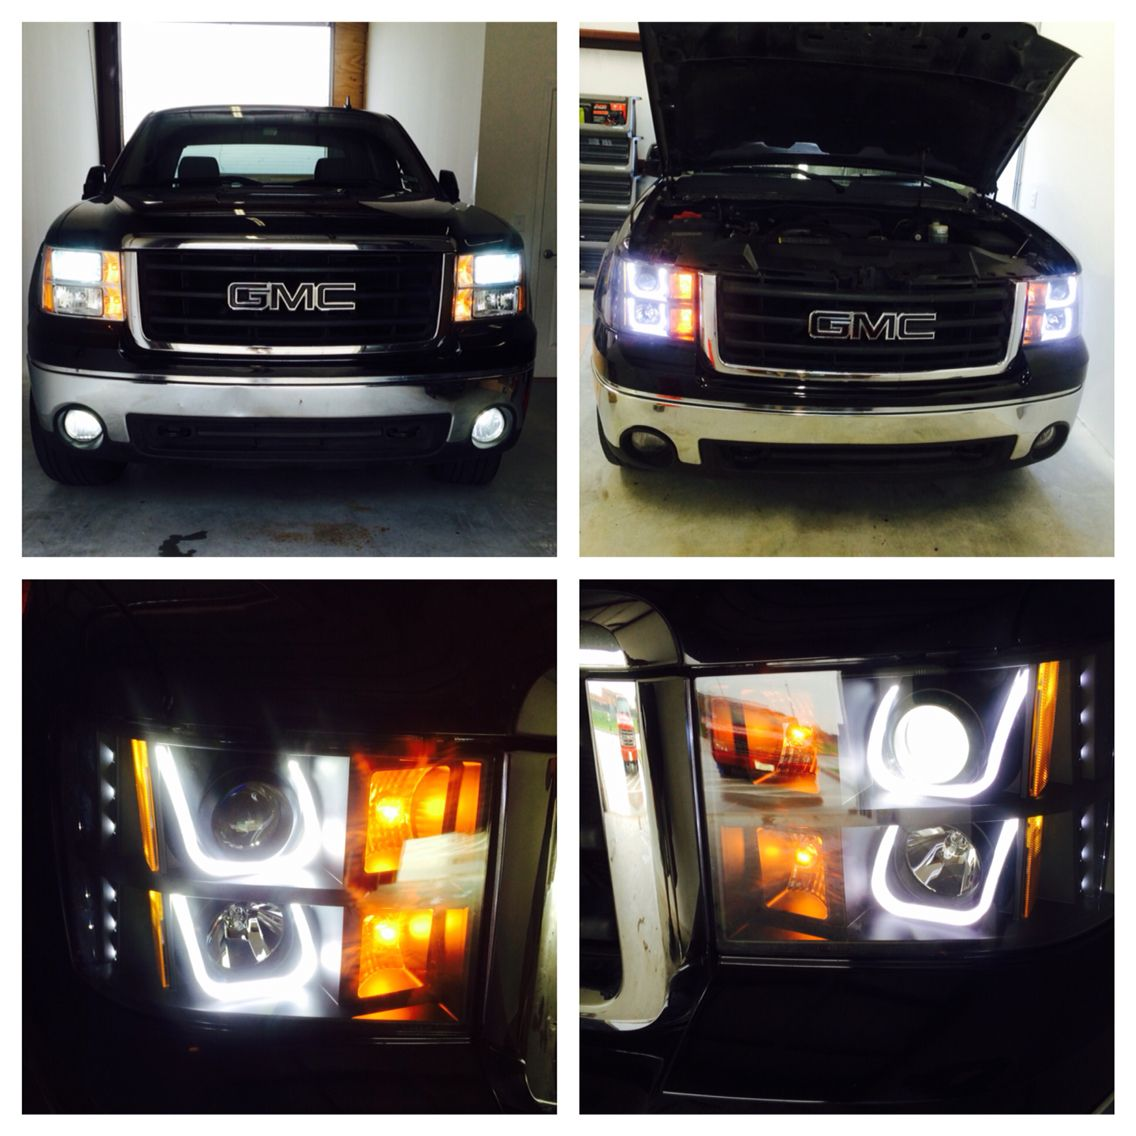 Hid Light On Factory Headlight Change To Ccfl Halo Projector With 2009 Gmc Sierra Exact Hd Lighting